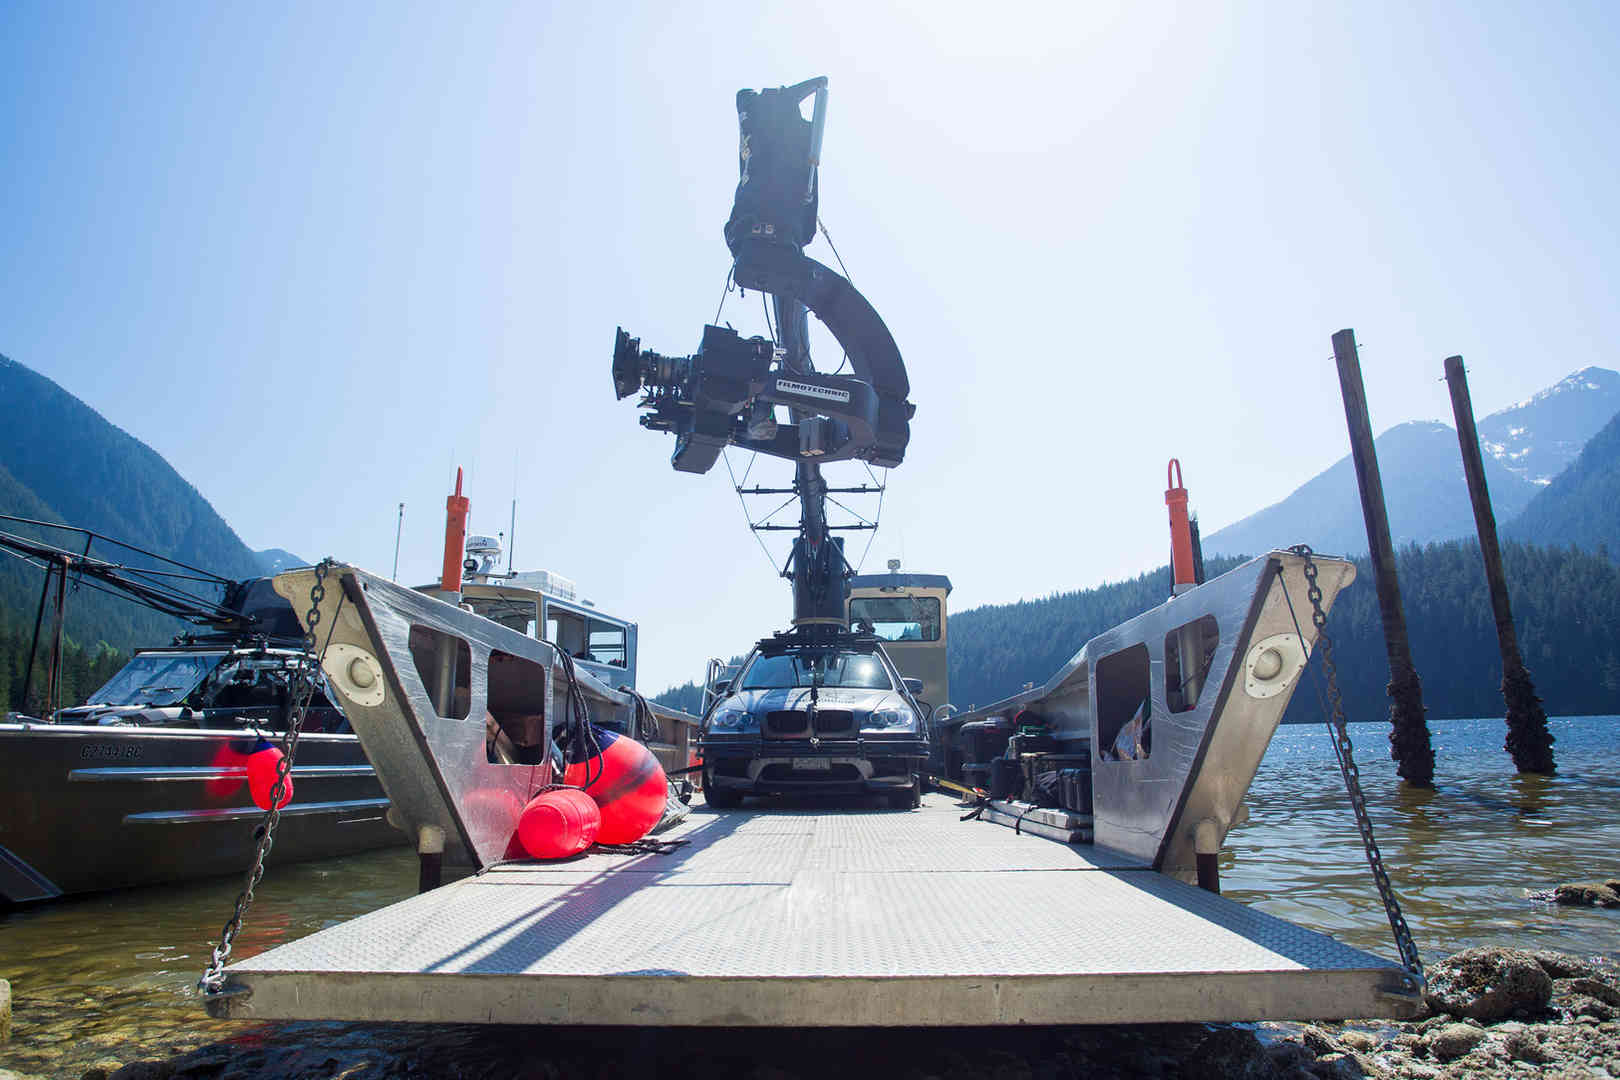 Russian Arm BMW X5M On Boat